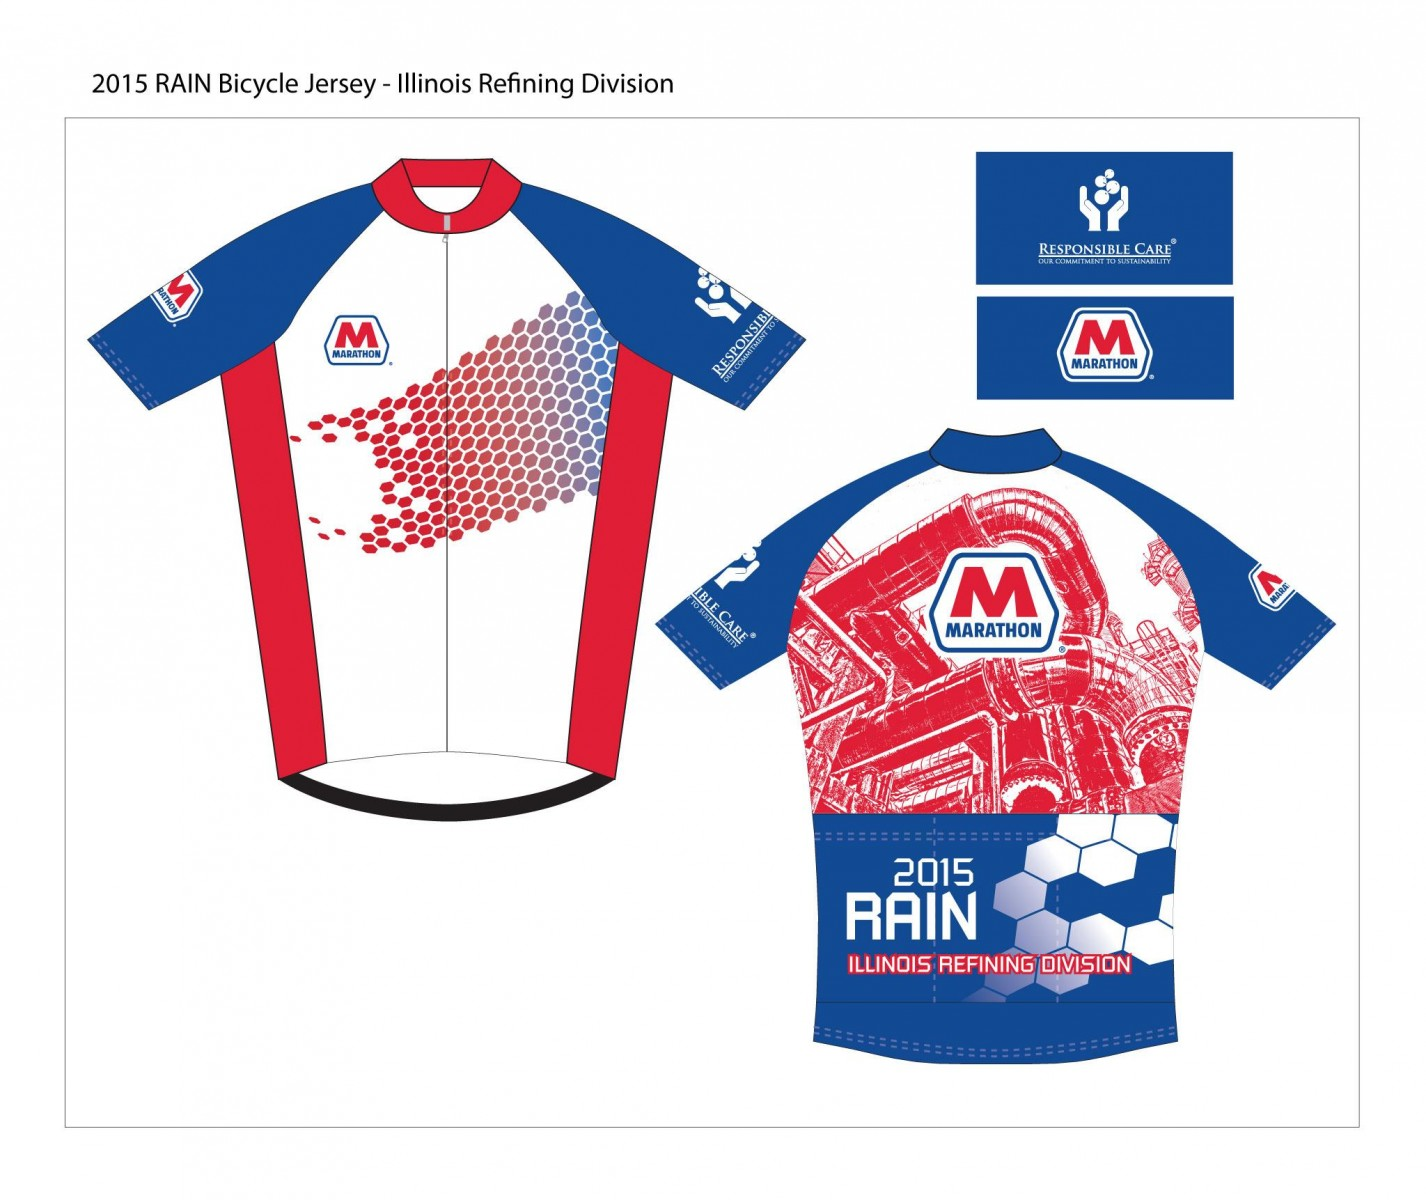 Rendering of the MPC employee bicycle jersey